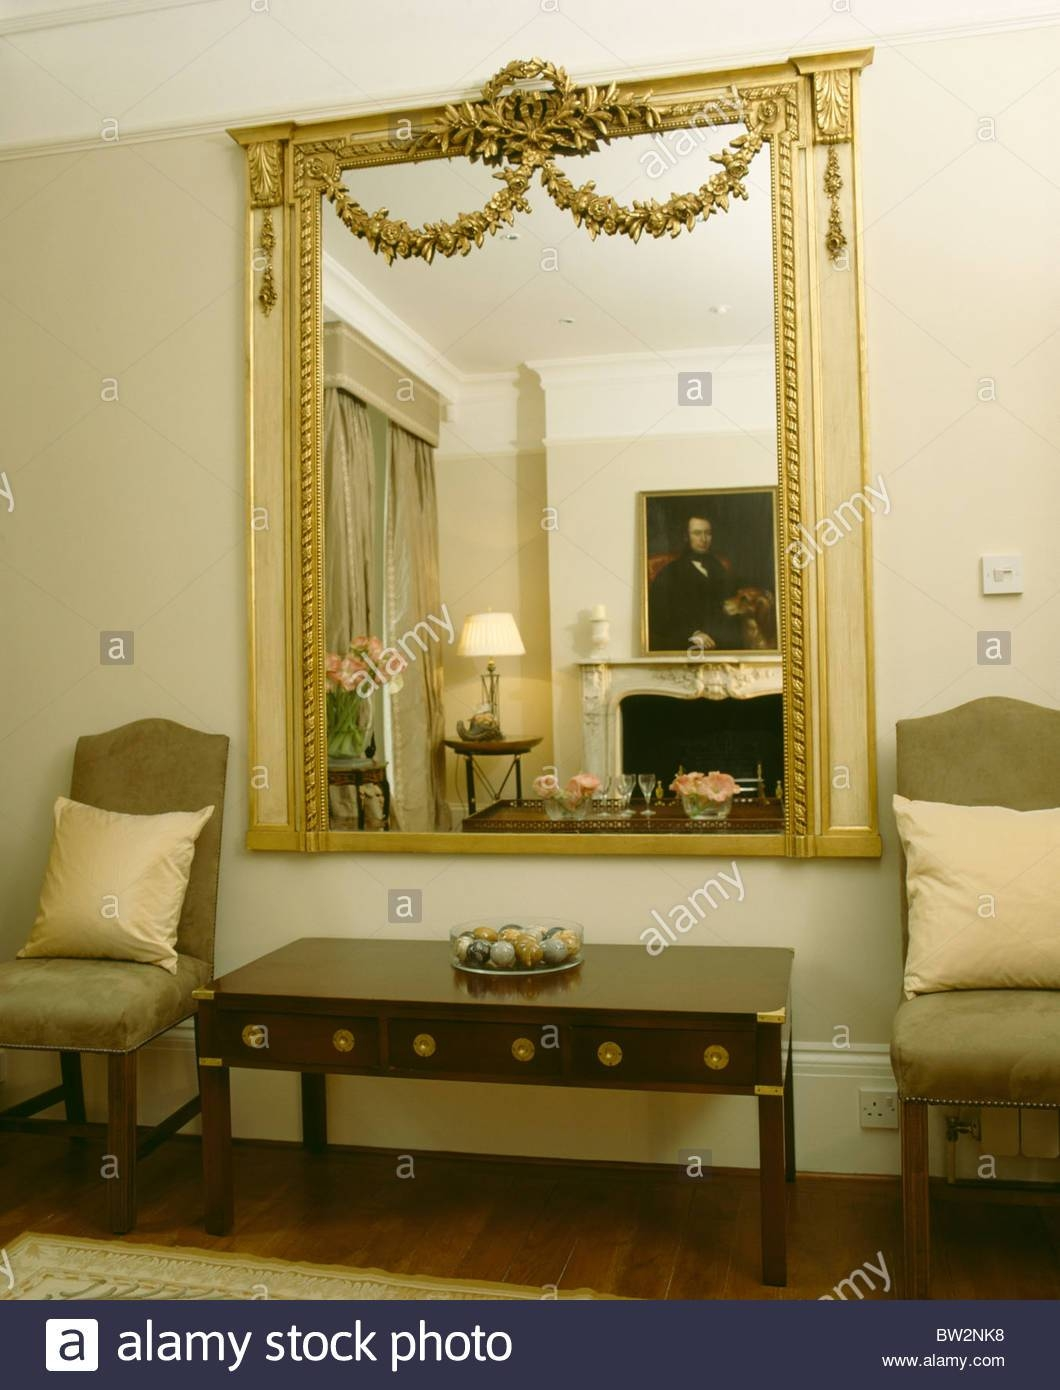 Large Ornate Gilt Antique Mirror On Wall Above Console Table In pertaining to Large Antiqued Mirrors (Image 19 of 25)